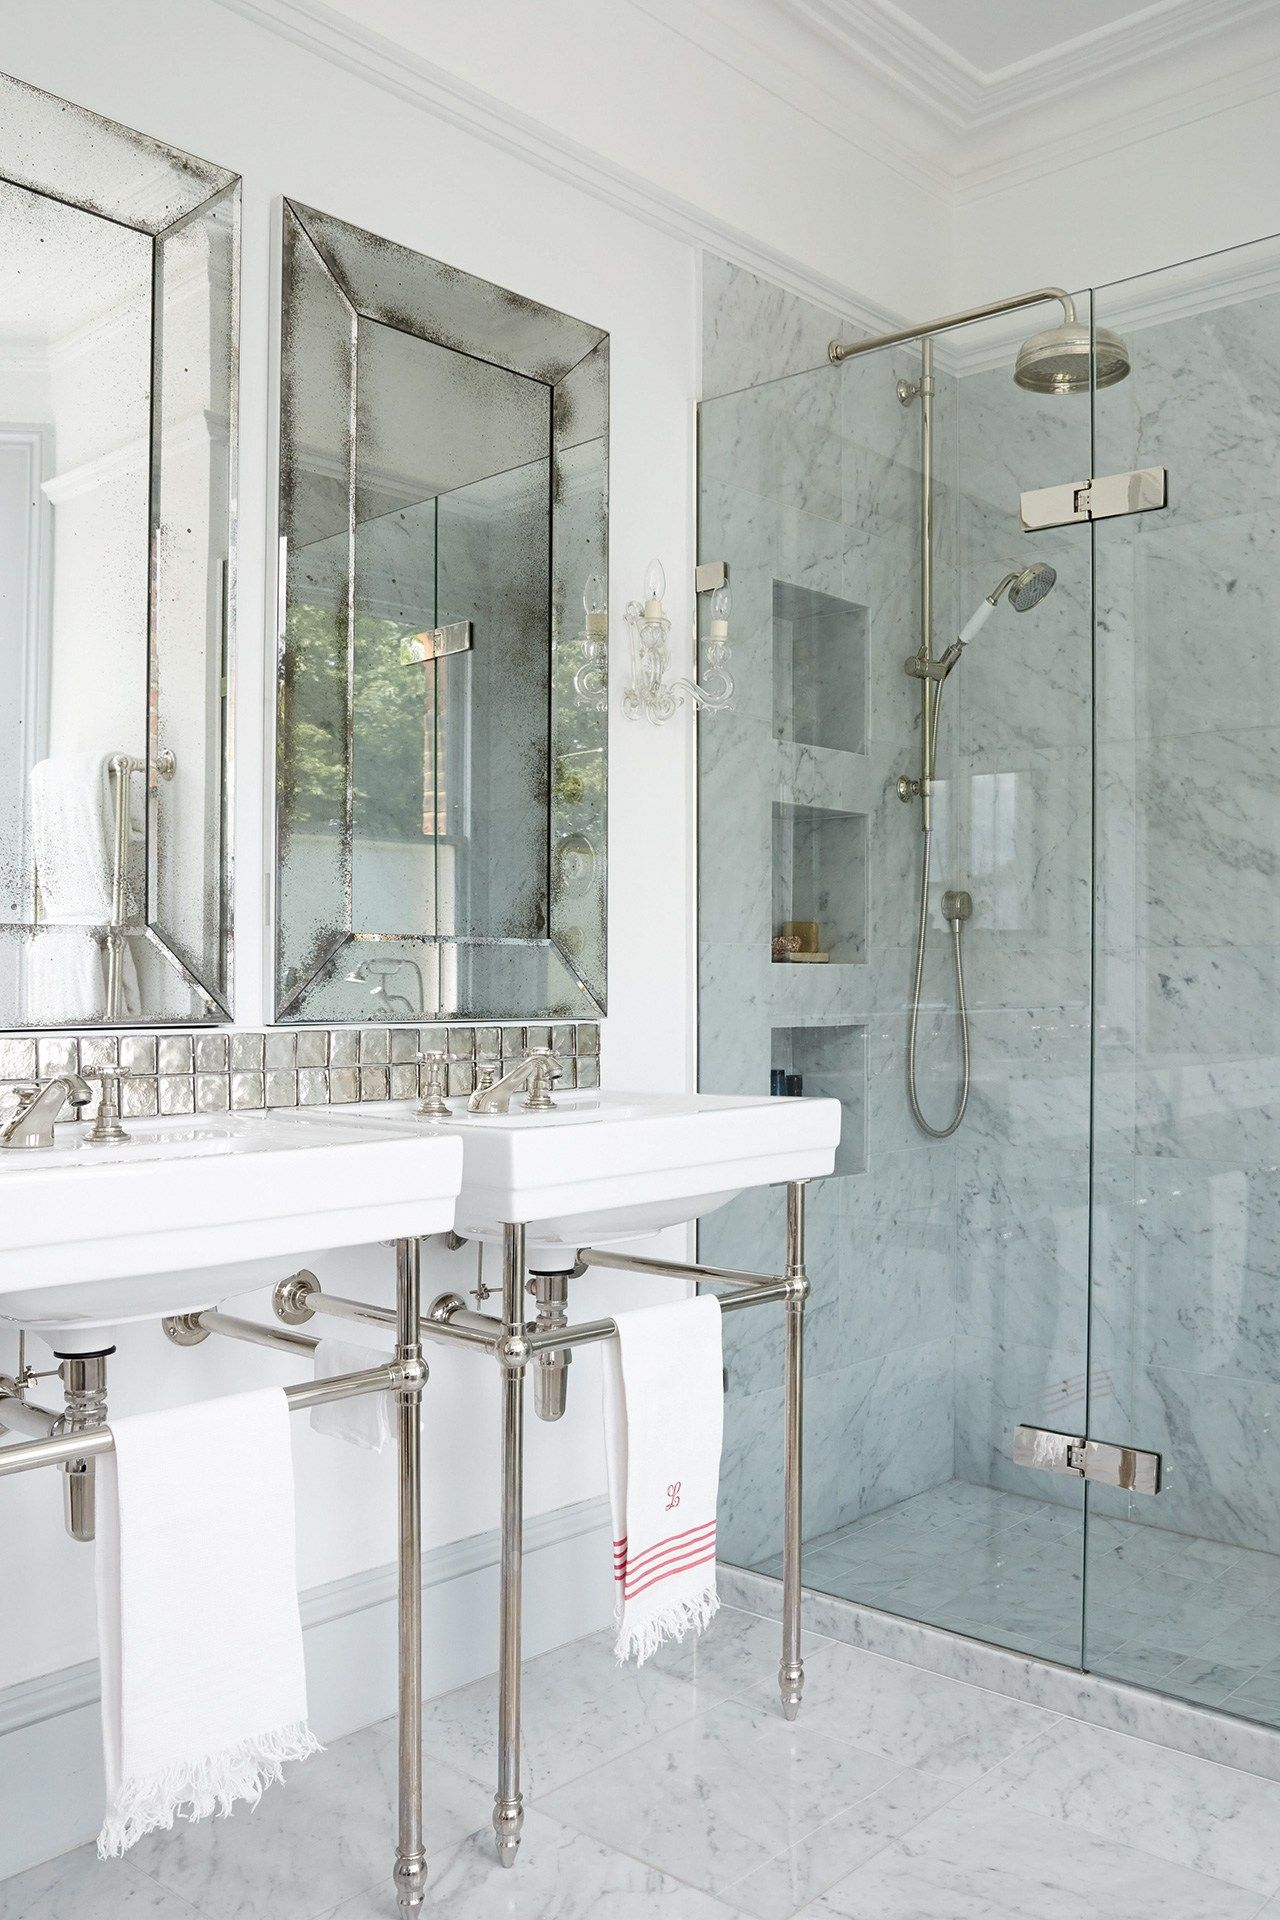 Small bathroom ideas | Pinterest | Carrara marble, Small bathroom ...